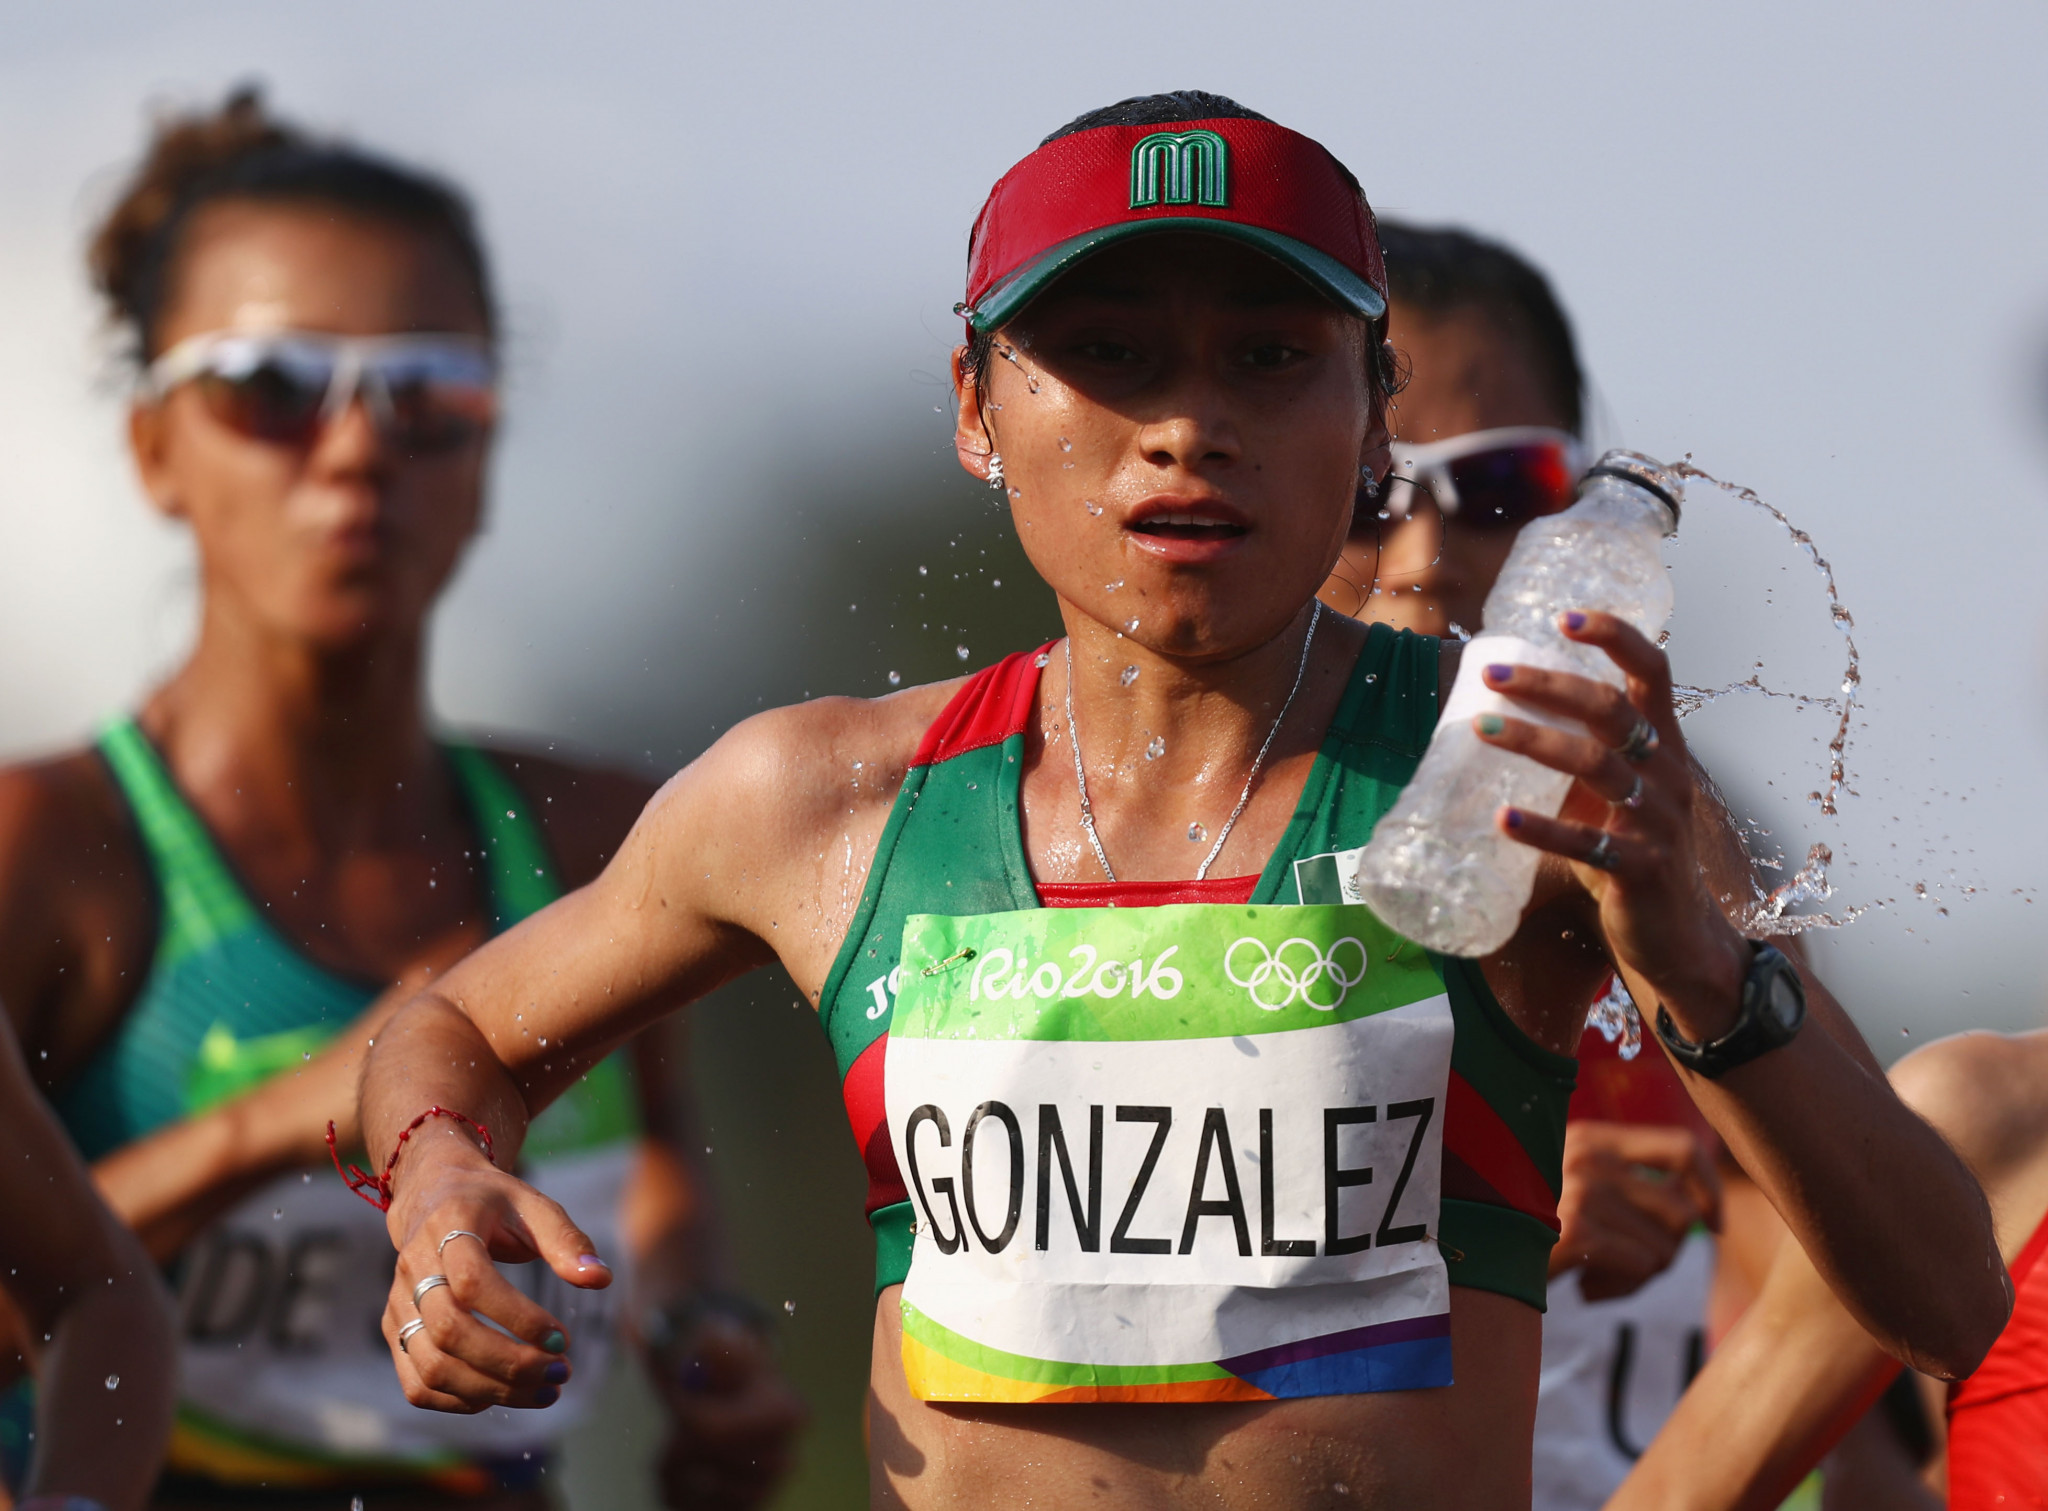 Olympic silver medallist María Guadalupe González Romero has failed in an appeal against her drugs ban ©Getty Images